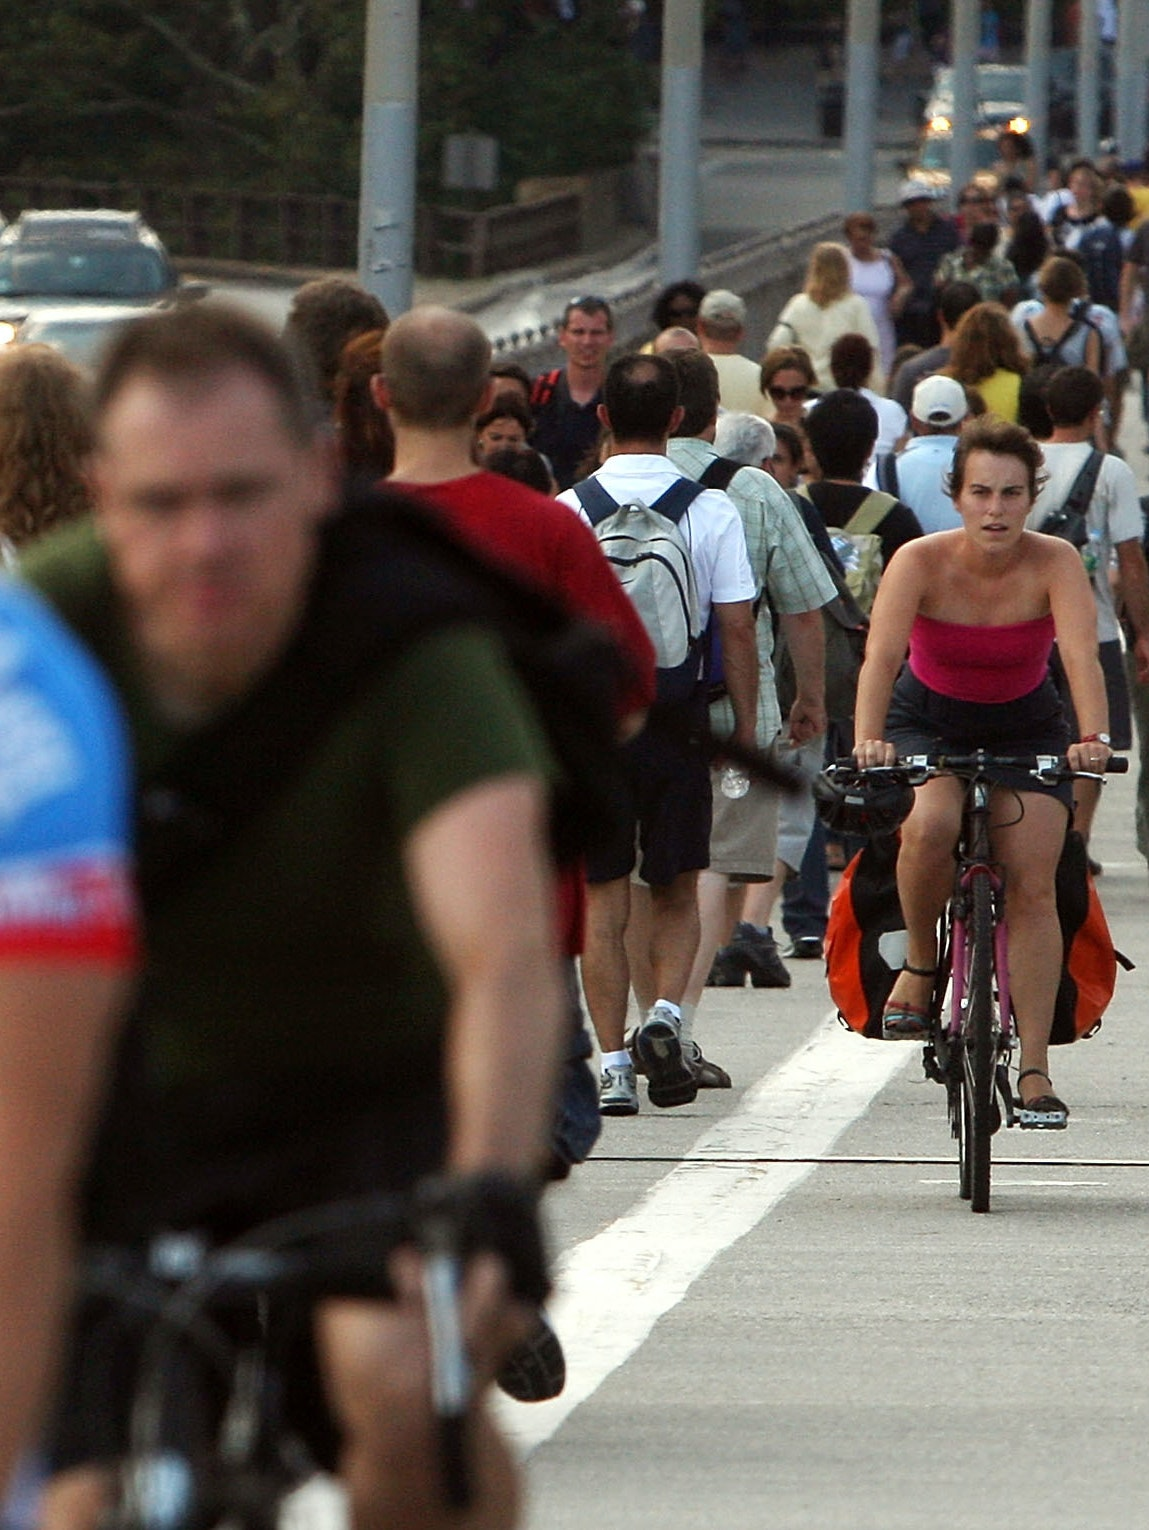 The Brooklyn Bridge sees over 3000 cyclists daily.